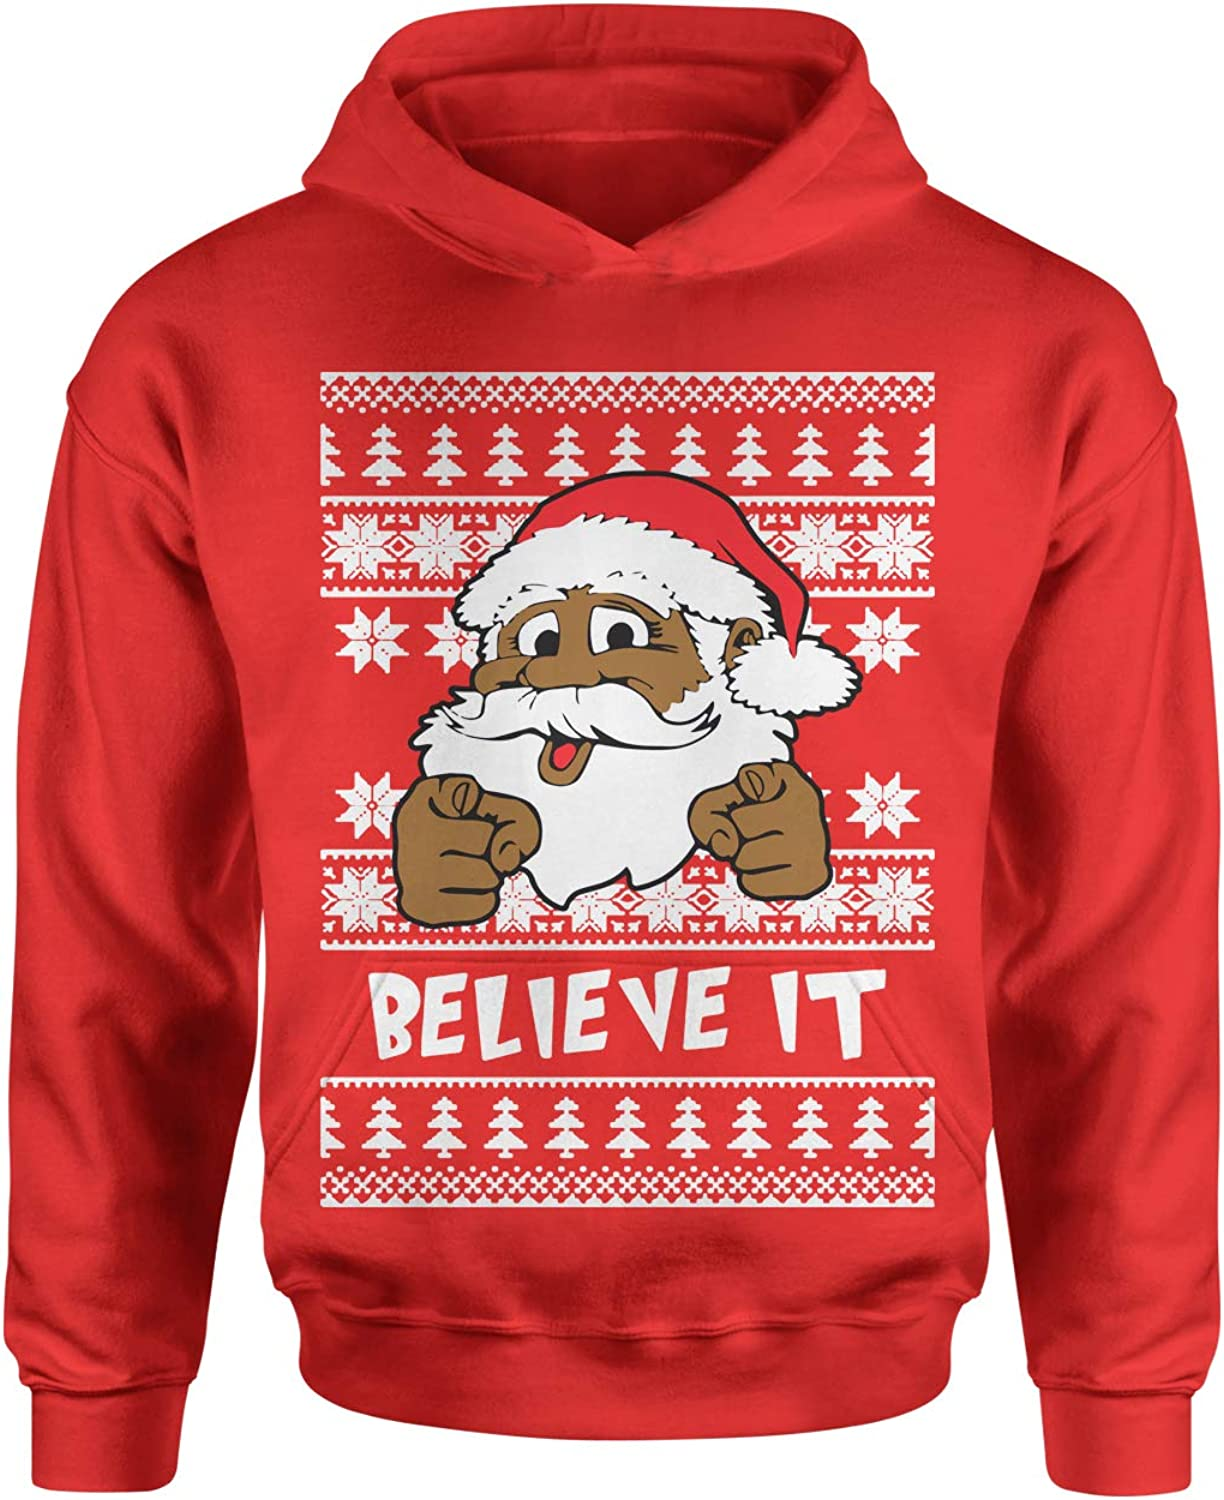 Black Santa Clause Ugly Christmas Youth-Sized Hoodie Motivated Culture Believe It